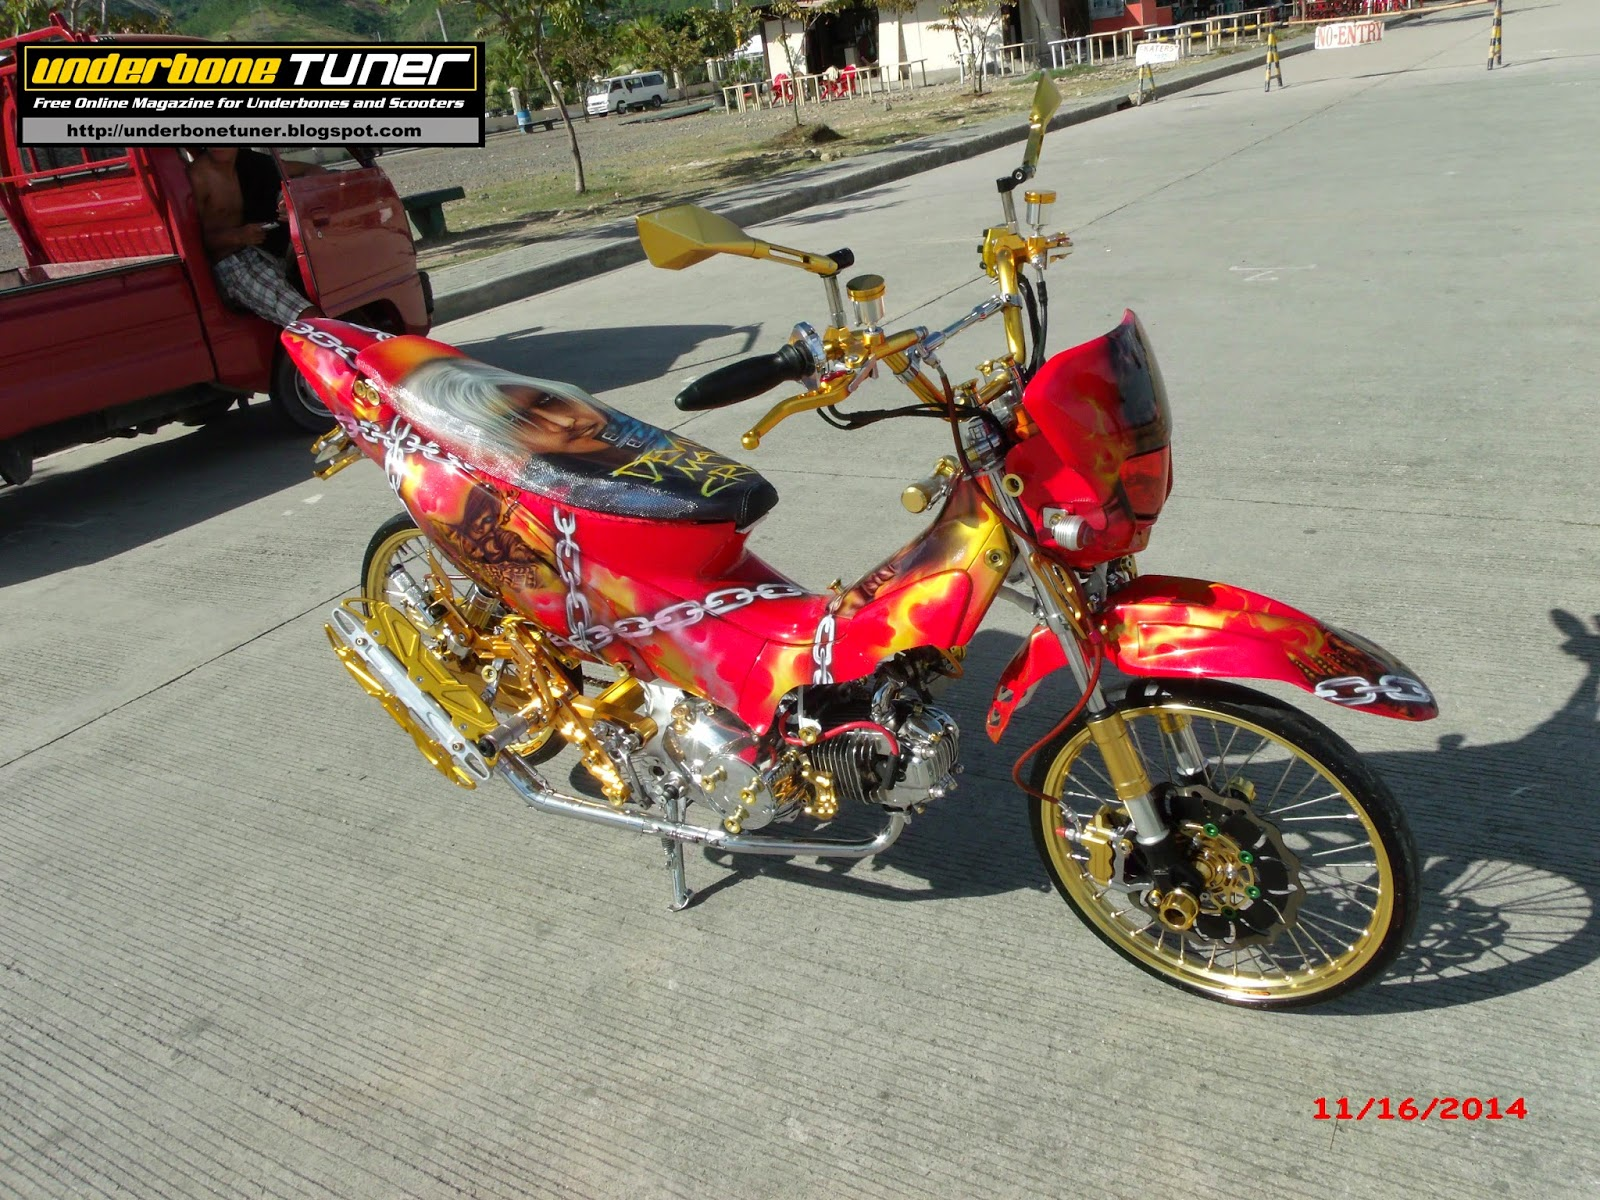 underbone tuner  Modified Honda XRM125   Demon Hunter Theme DMC